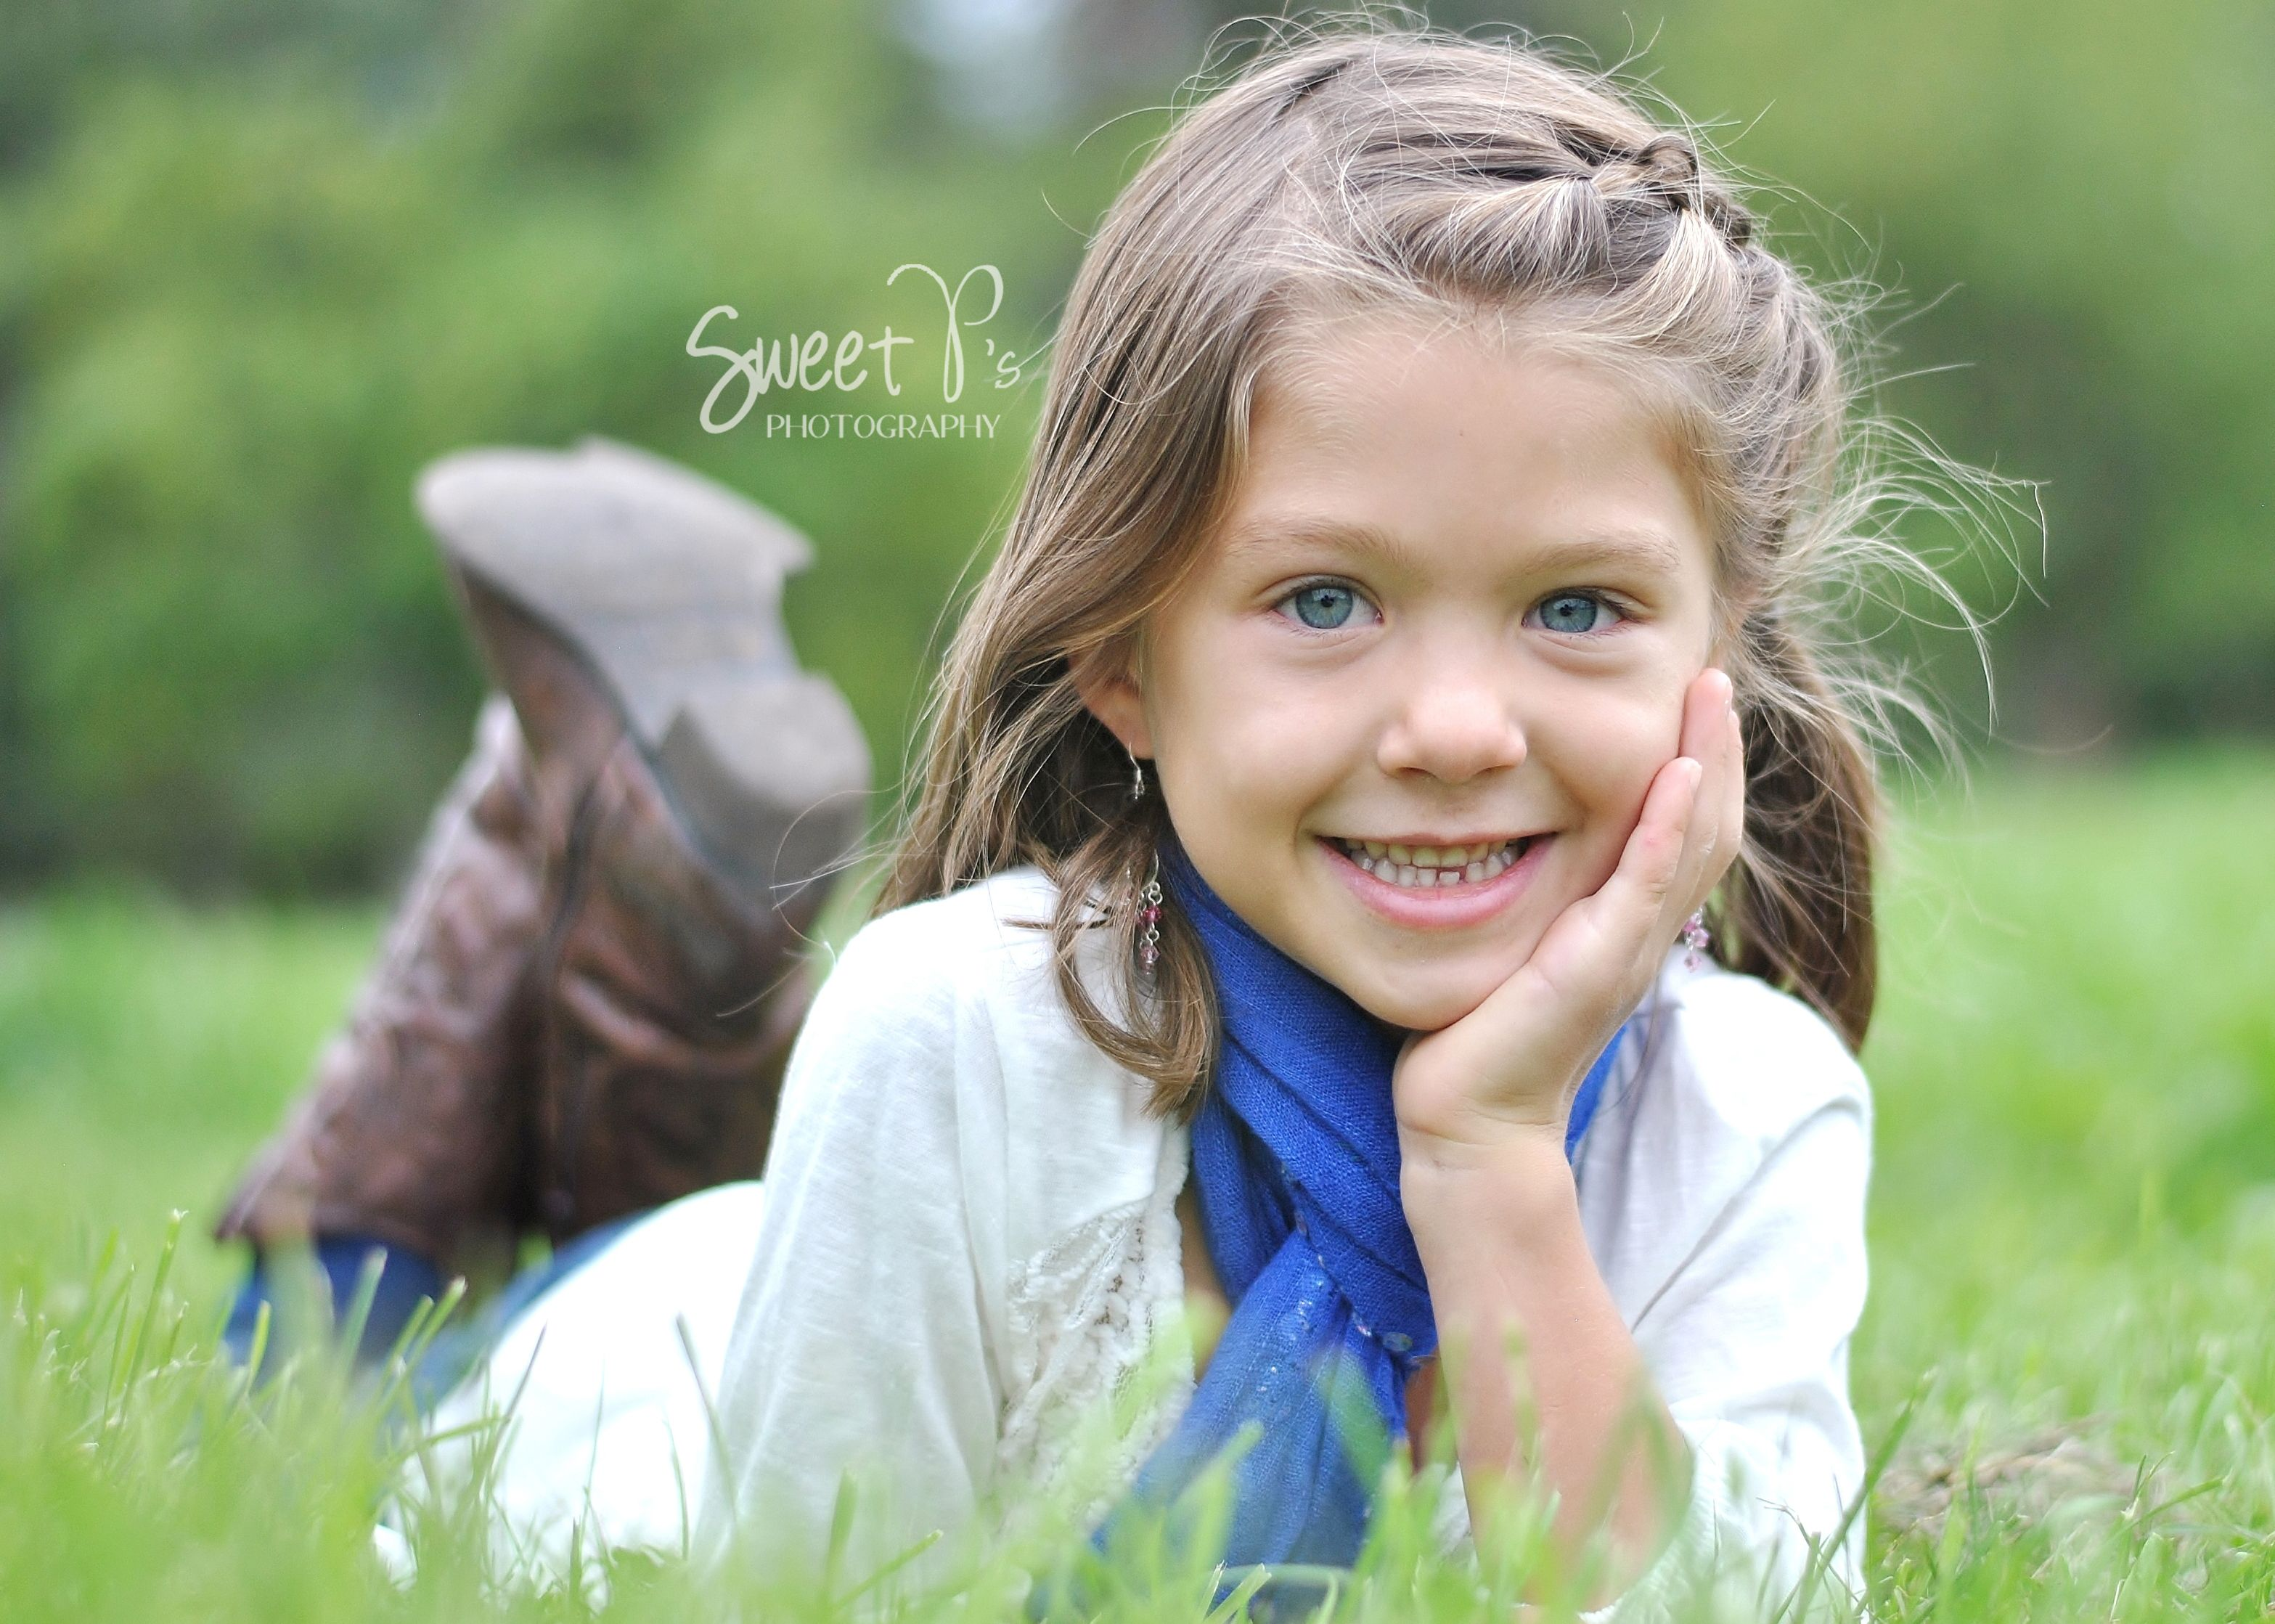 little kids fall photography poses sweet ps photography wny wwwsweetpsphotographywnycom - Little Kids Pictures